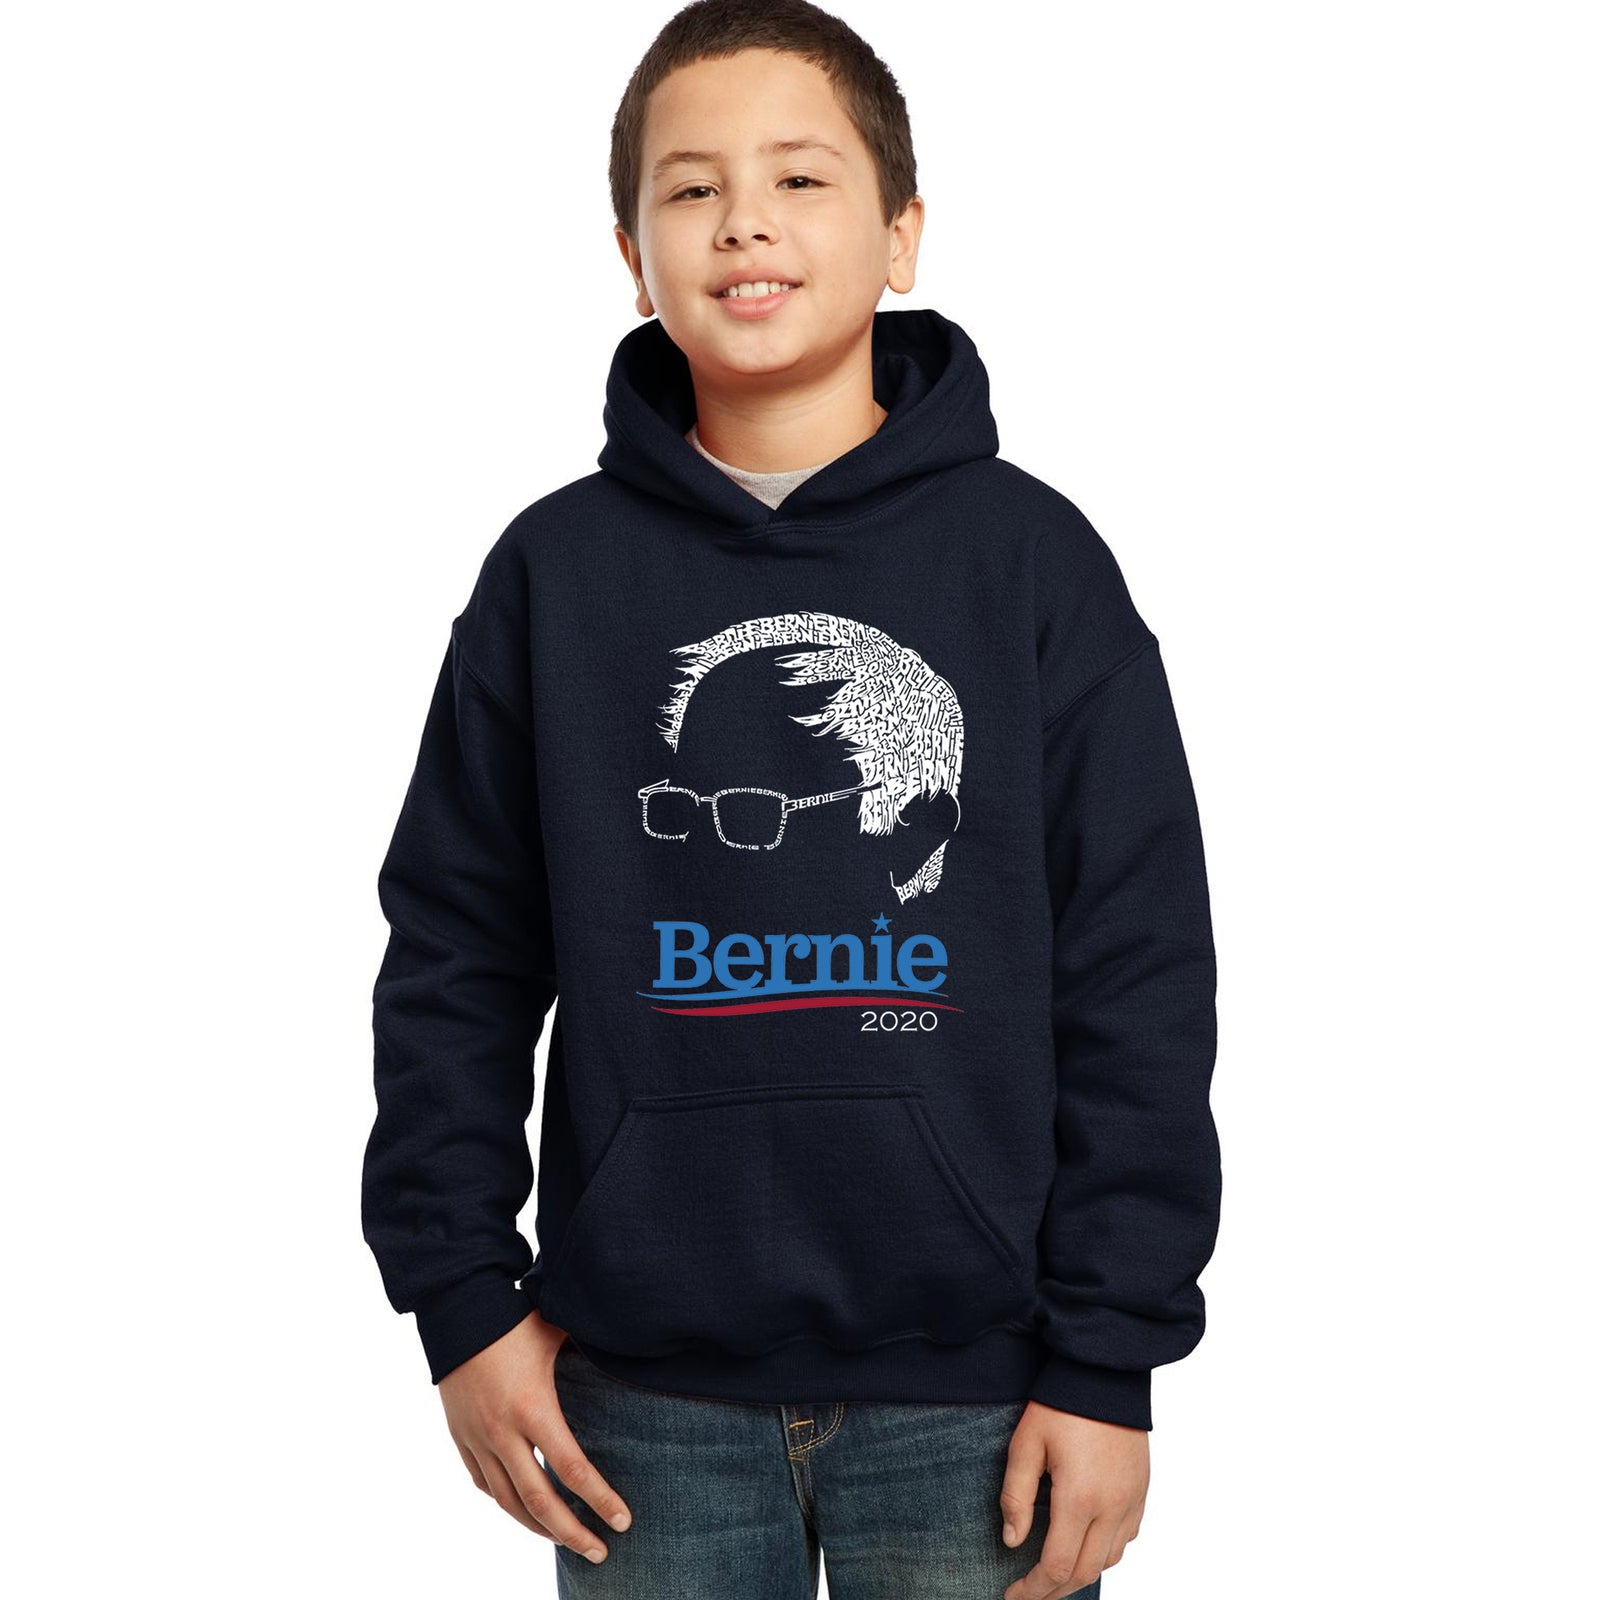 Boy's Word Art Hooded Sweatshirt - Bernie Sanders 2020